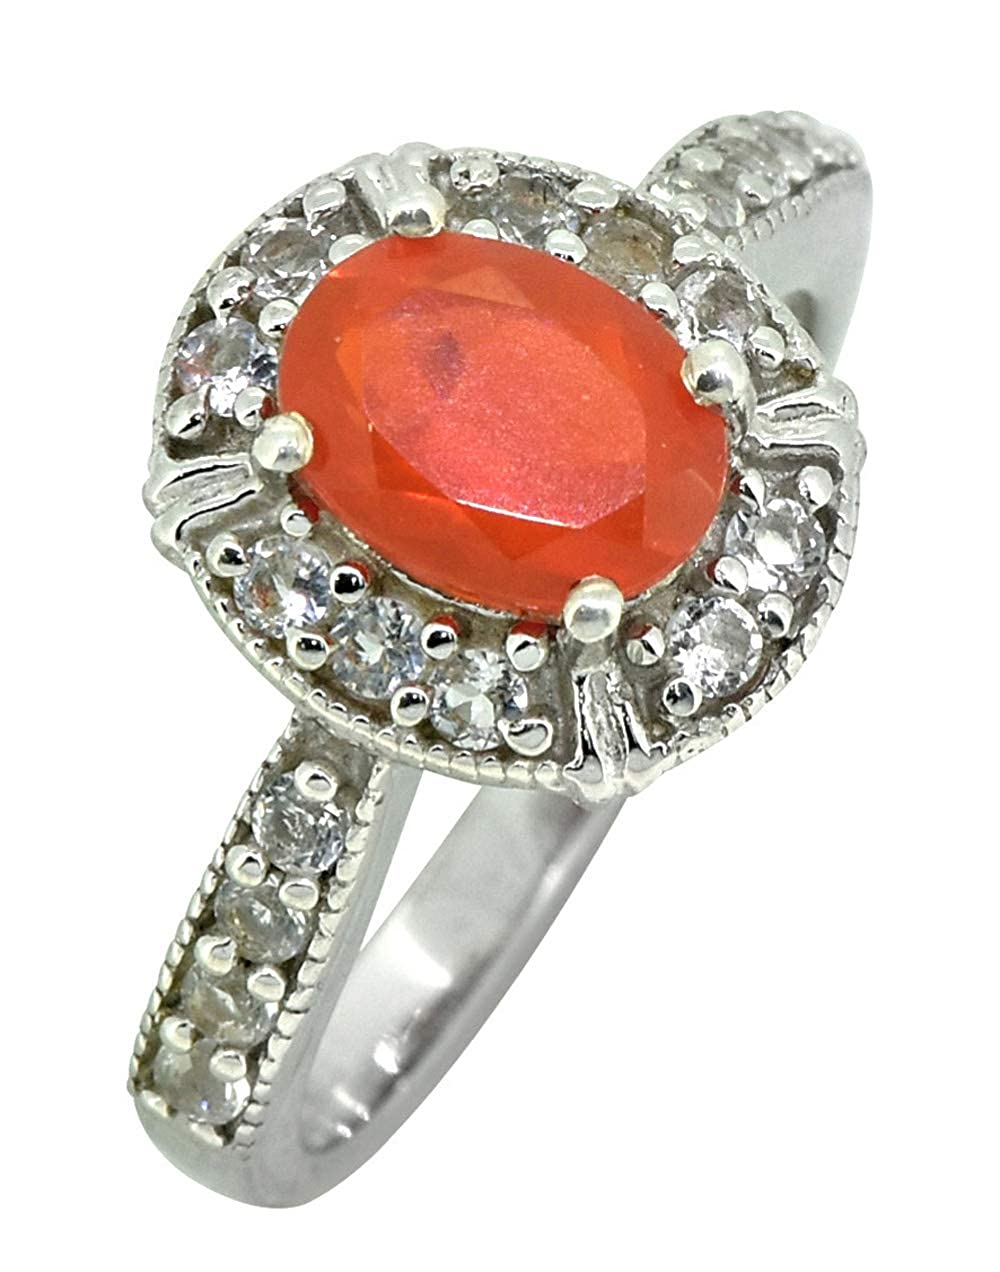 YoTreasure Red Opal White Topaz 925 Sterling Silver Designer Ring